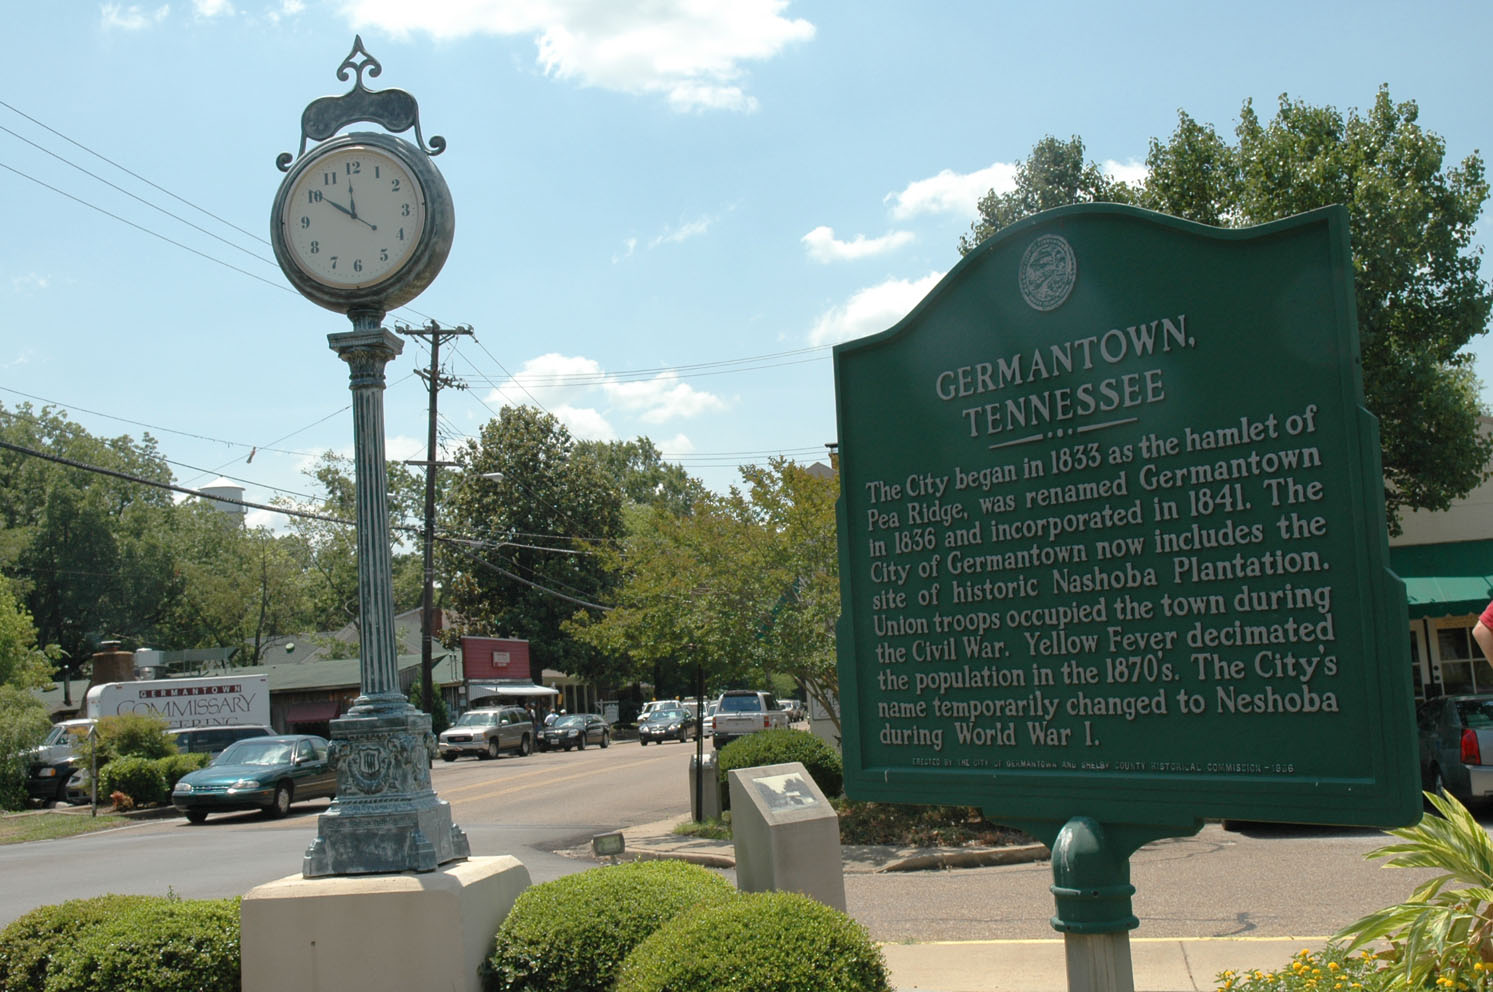 Downtown Germantown